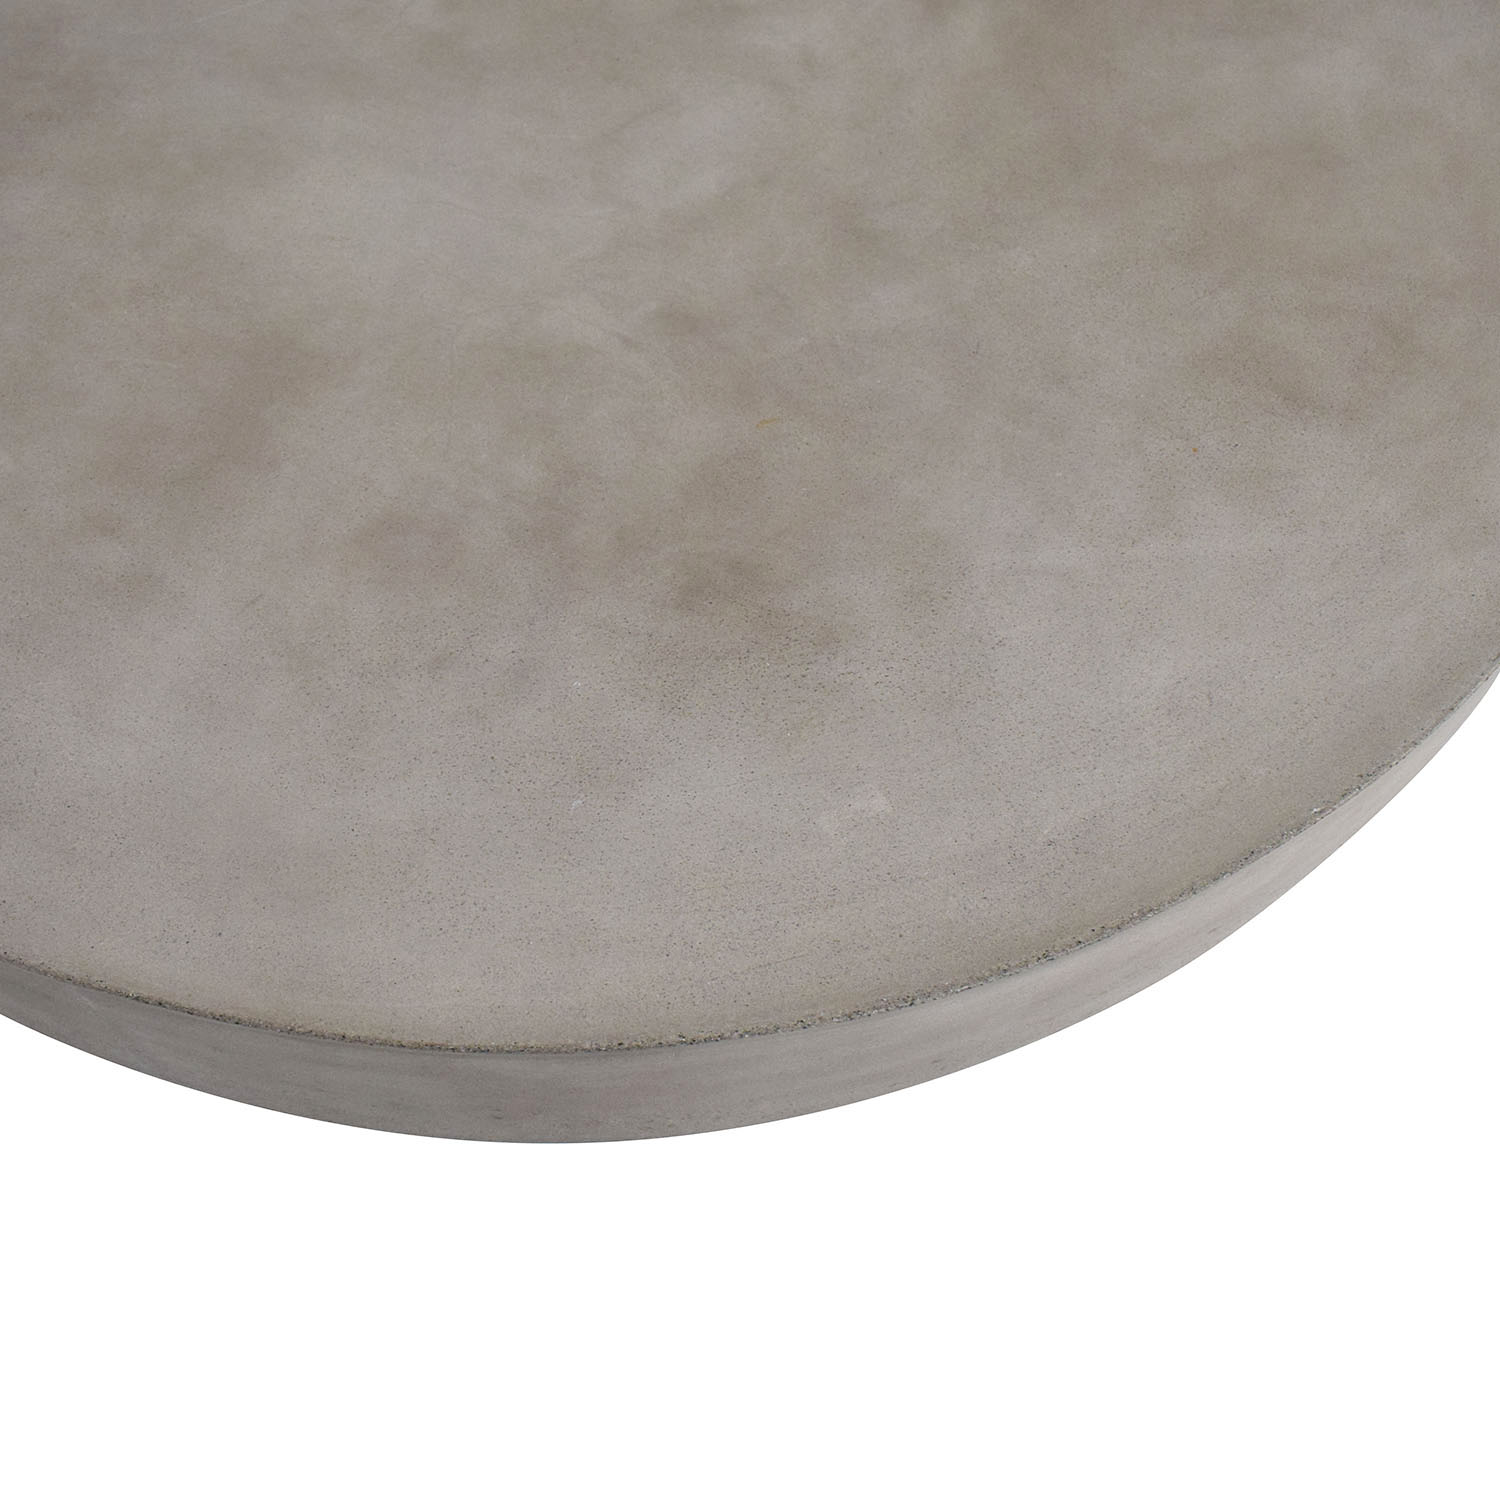 CB2 CB2 Fuze Concrete Bistro Table Tables